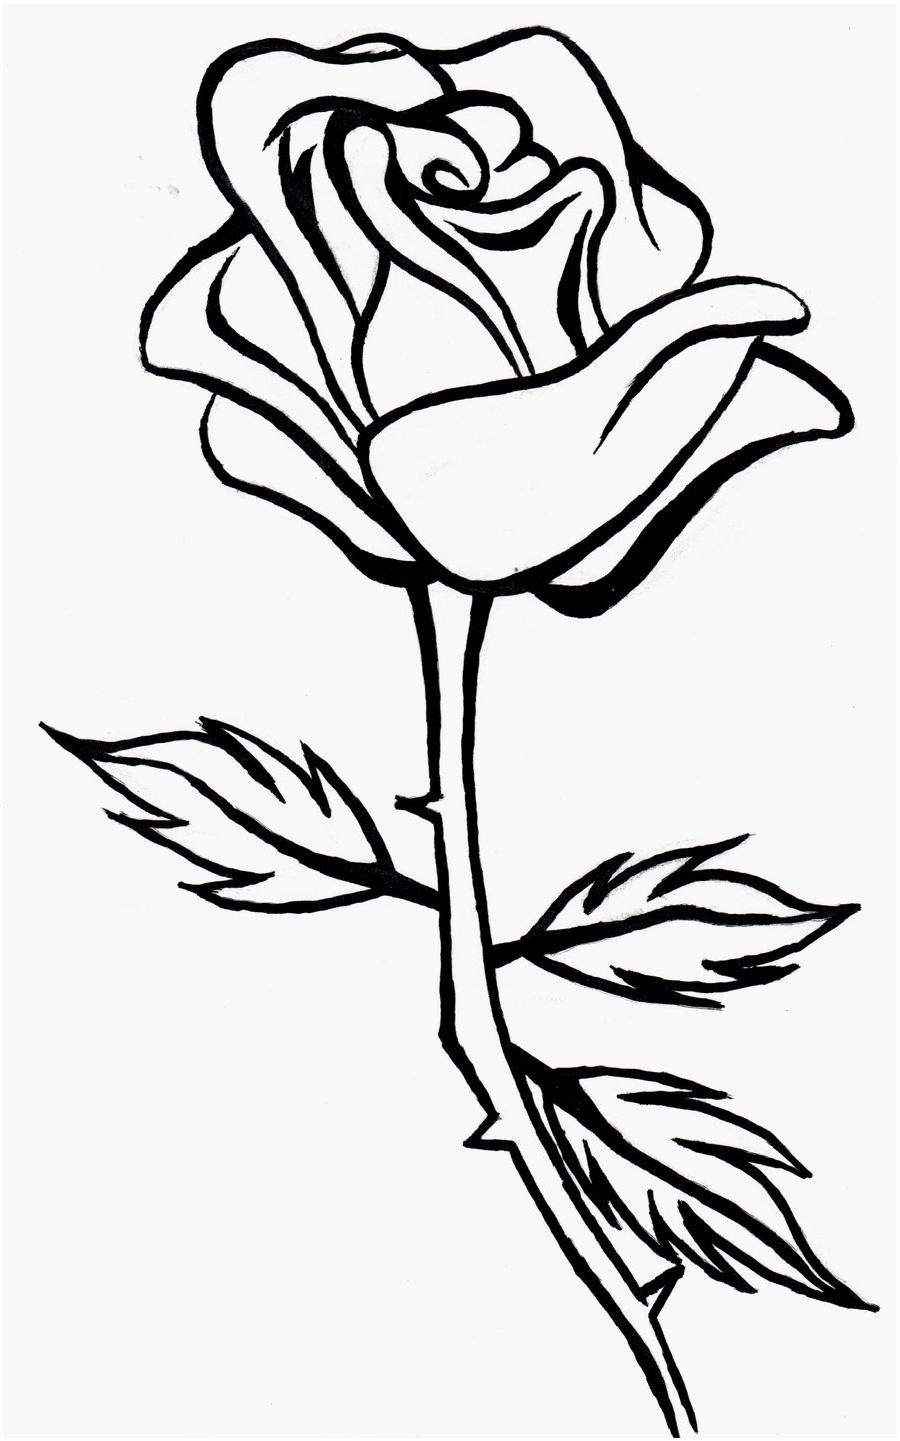 900x1441 black and white rose drawing gaeroladid white rose drawing color